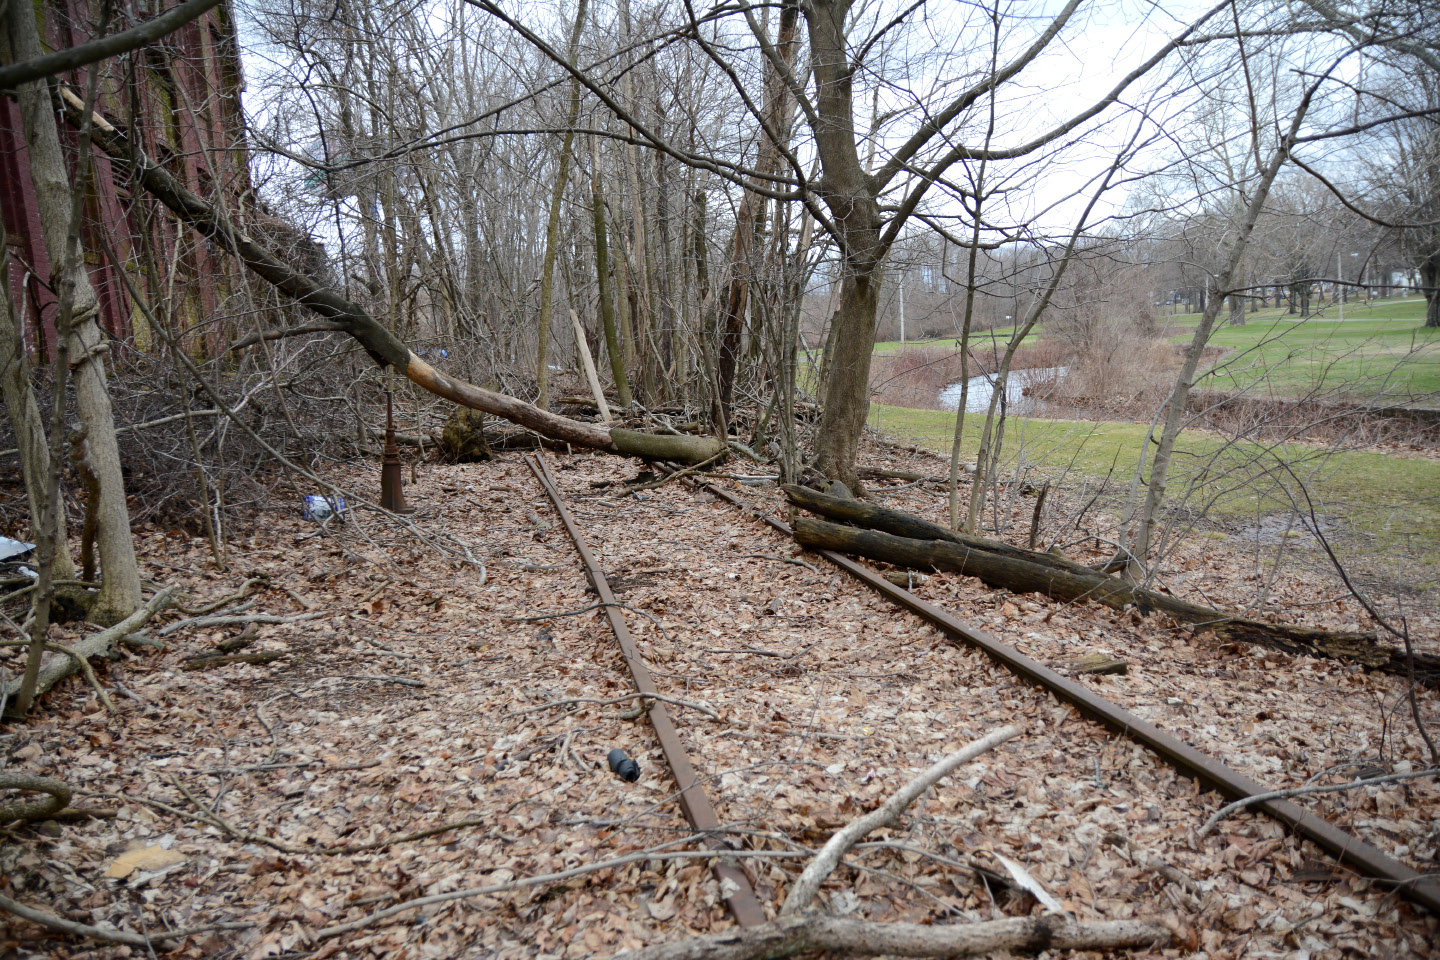 meriden u2014 city officials say the former rail line near brookside park